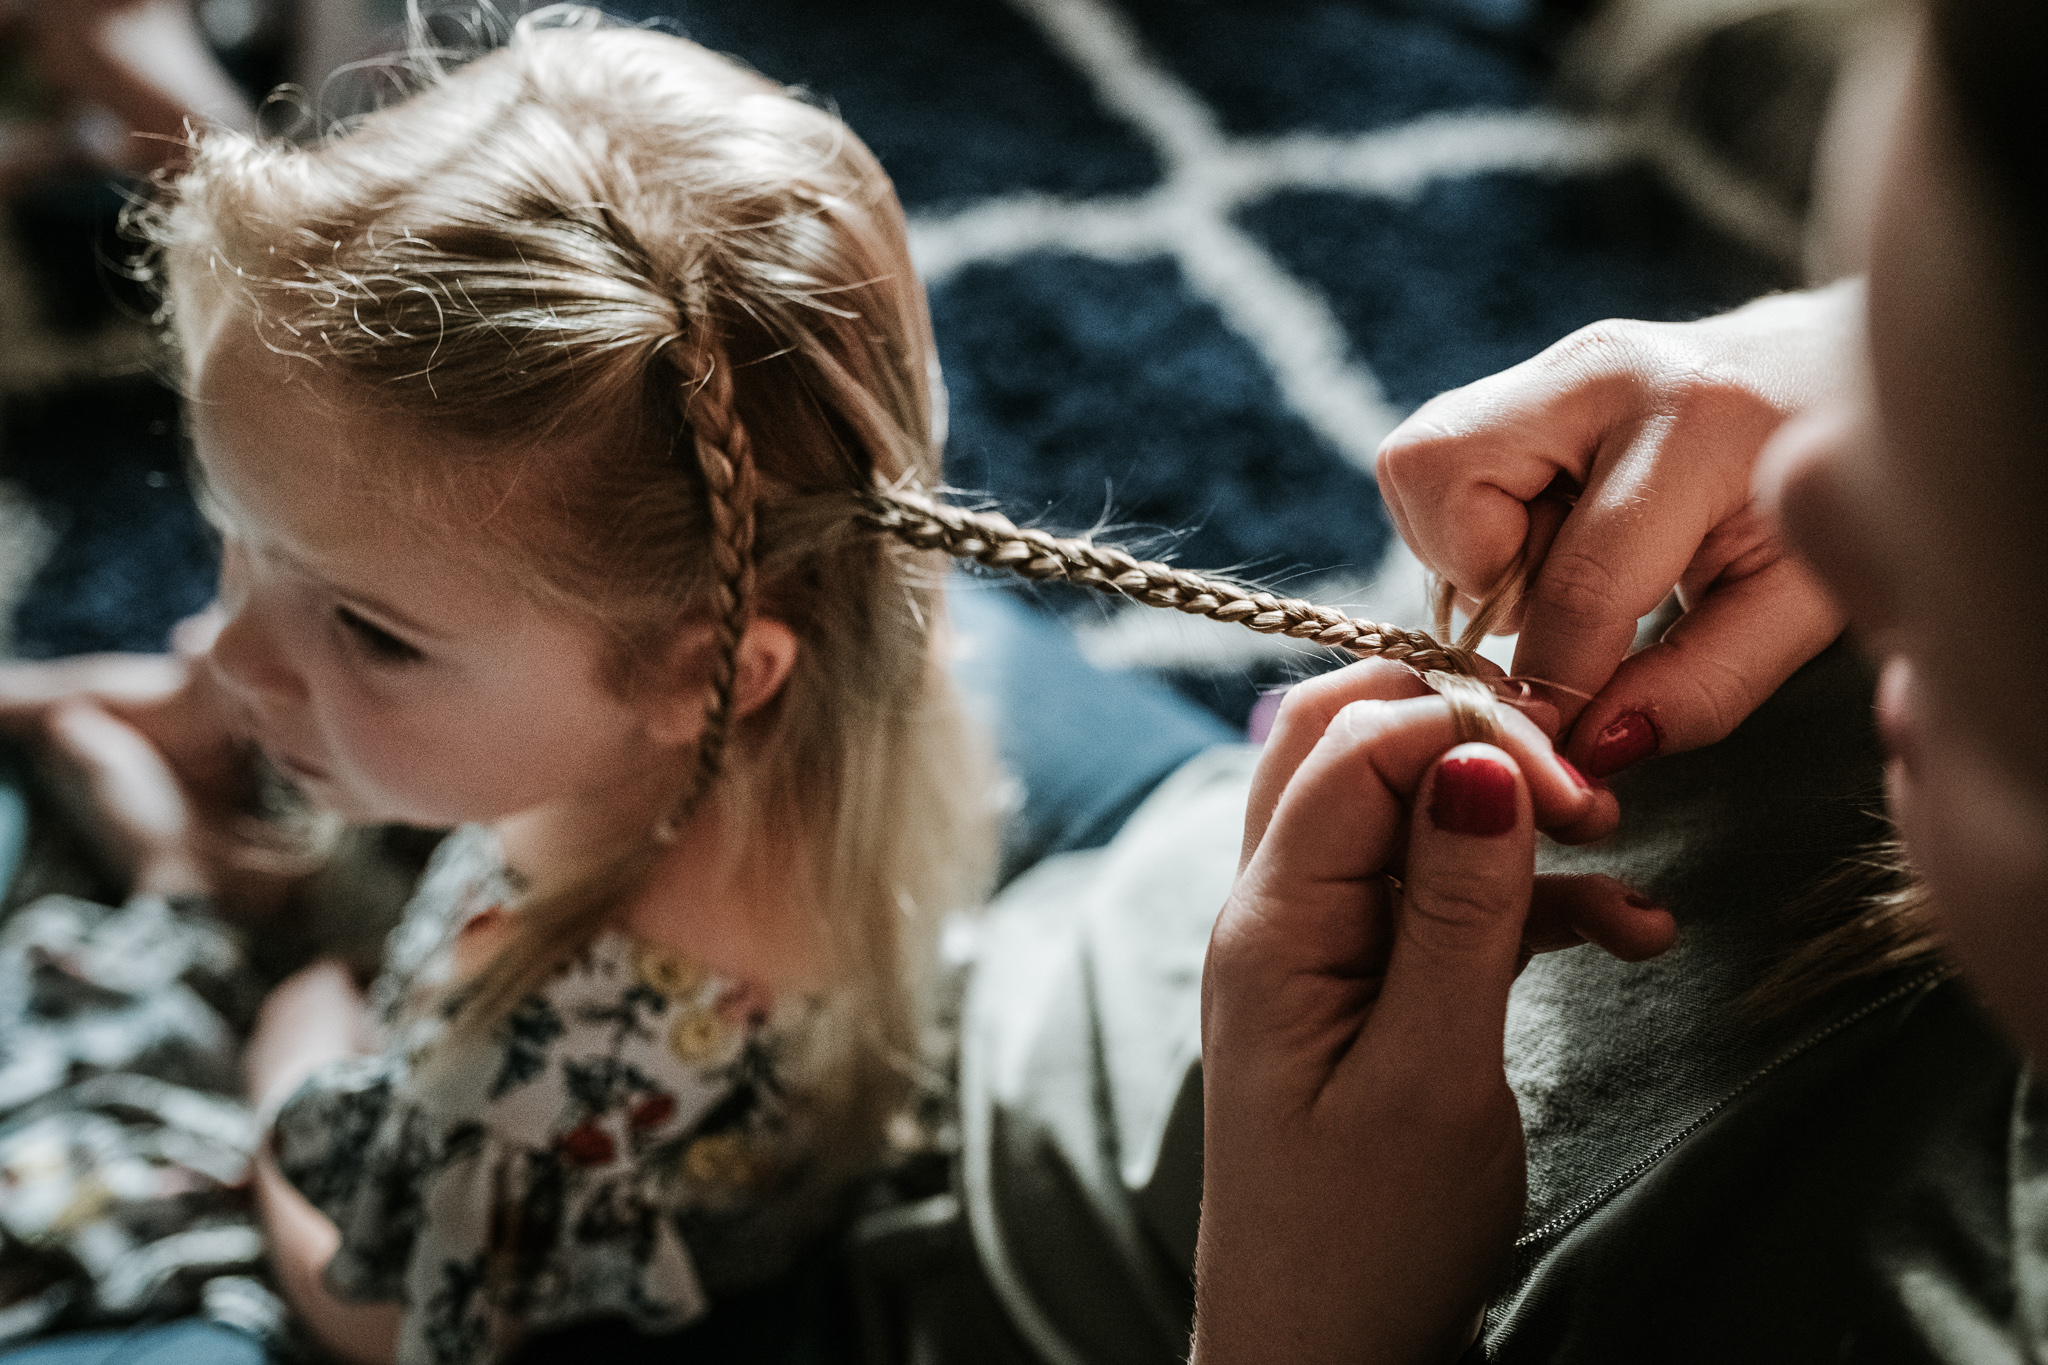 Sara braids Kinsely's hair.  There is a stillness and patience involved here in both parent and child that I find really beautiful.